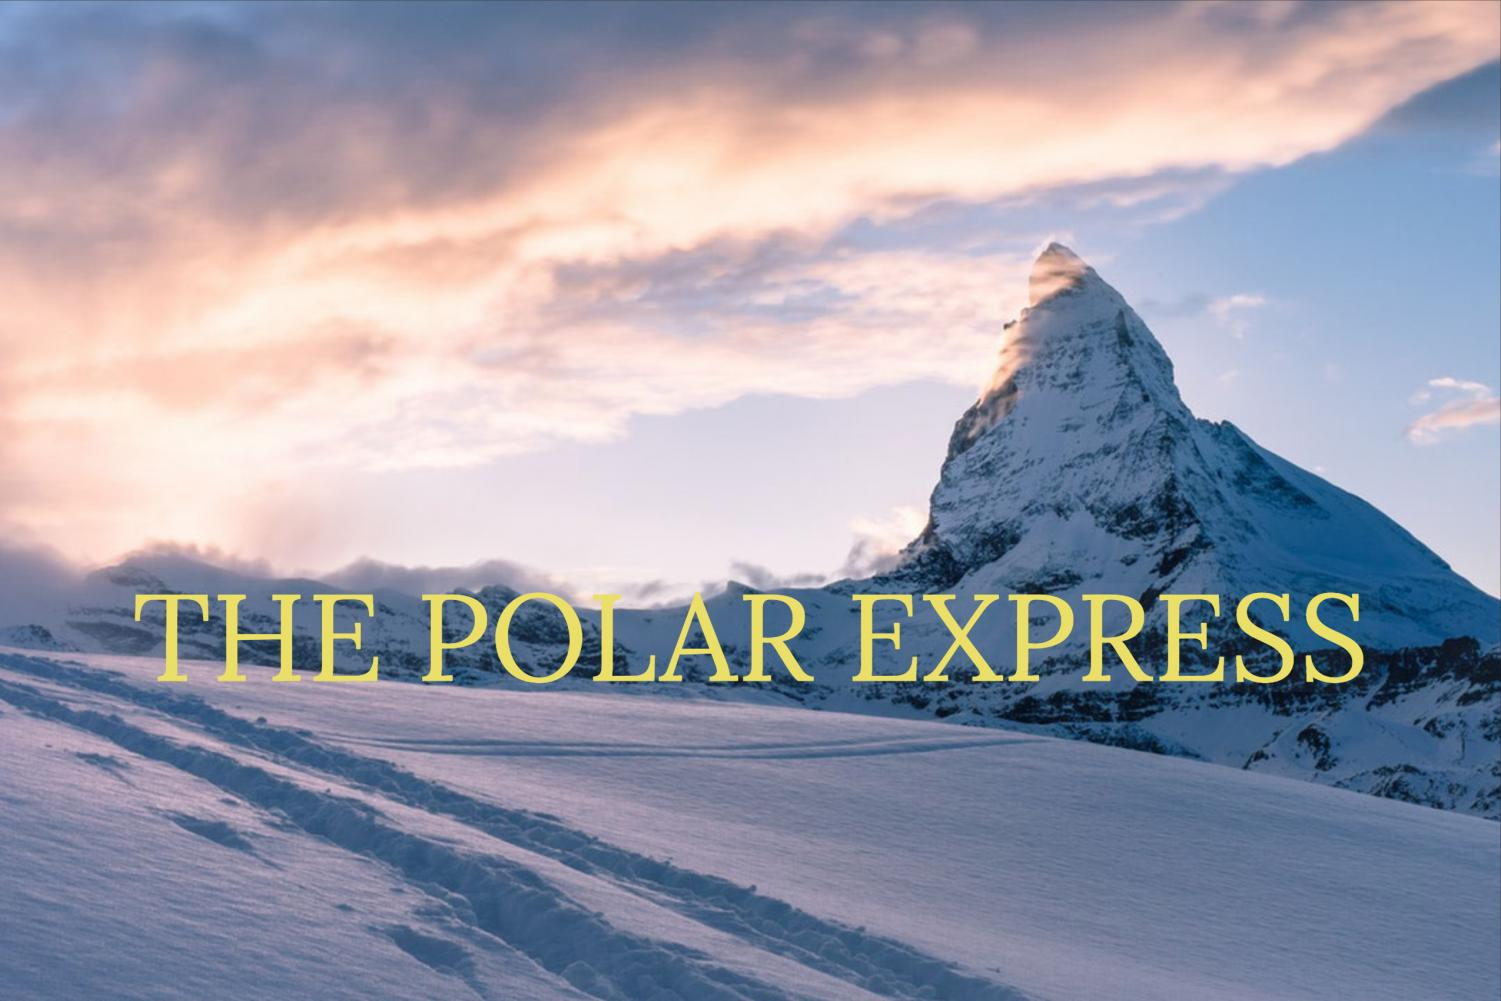 'The Polar Express' (2004) has captured the hearts of younger and older viewers alike with it's meaningful message.